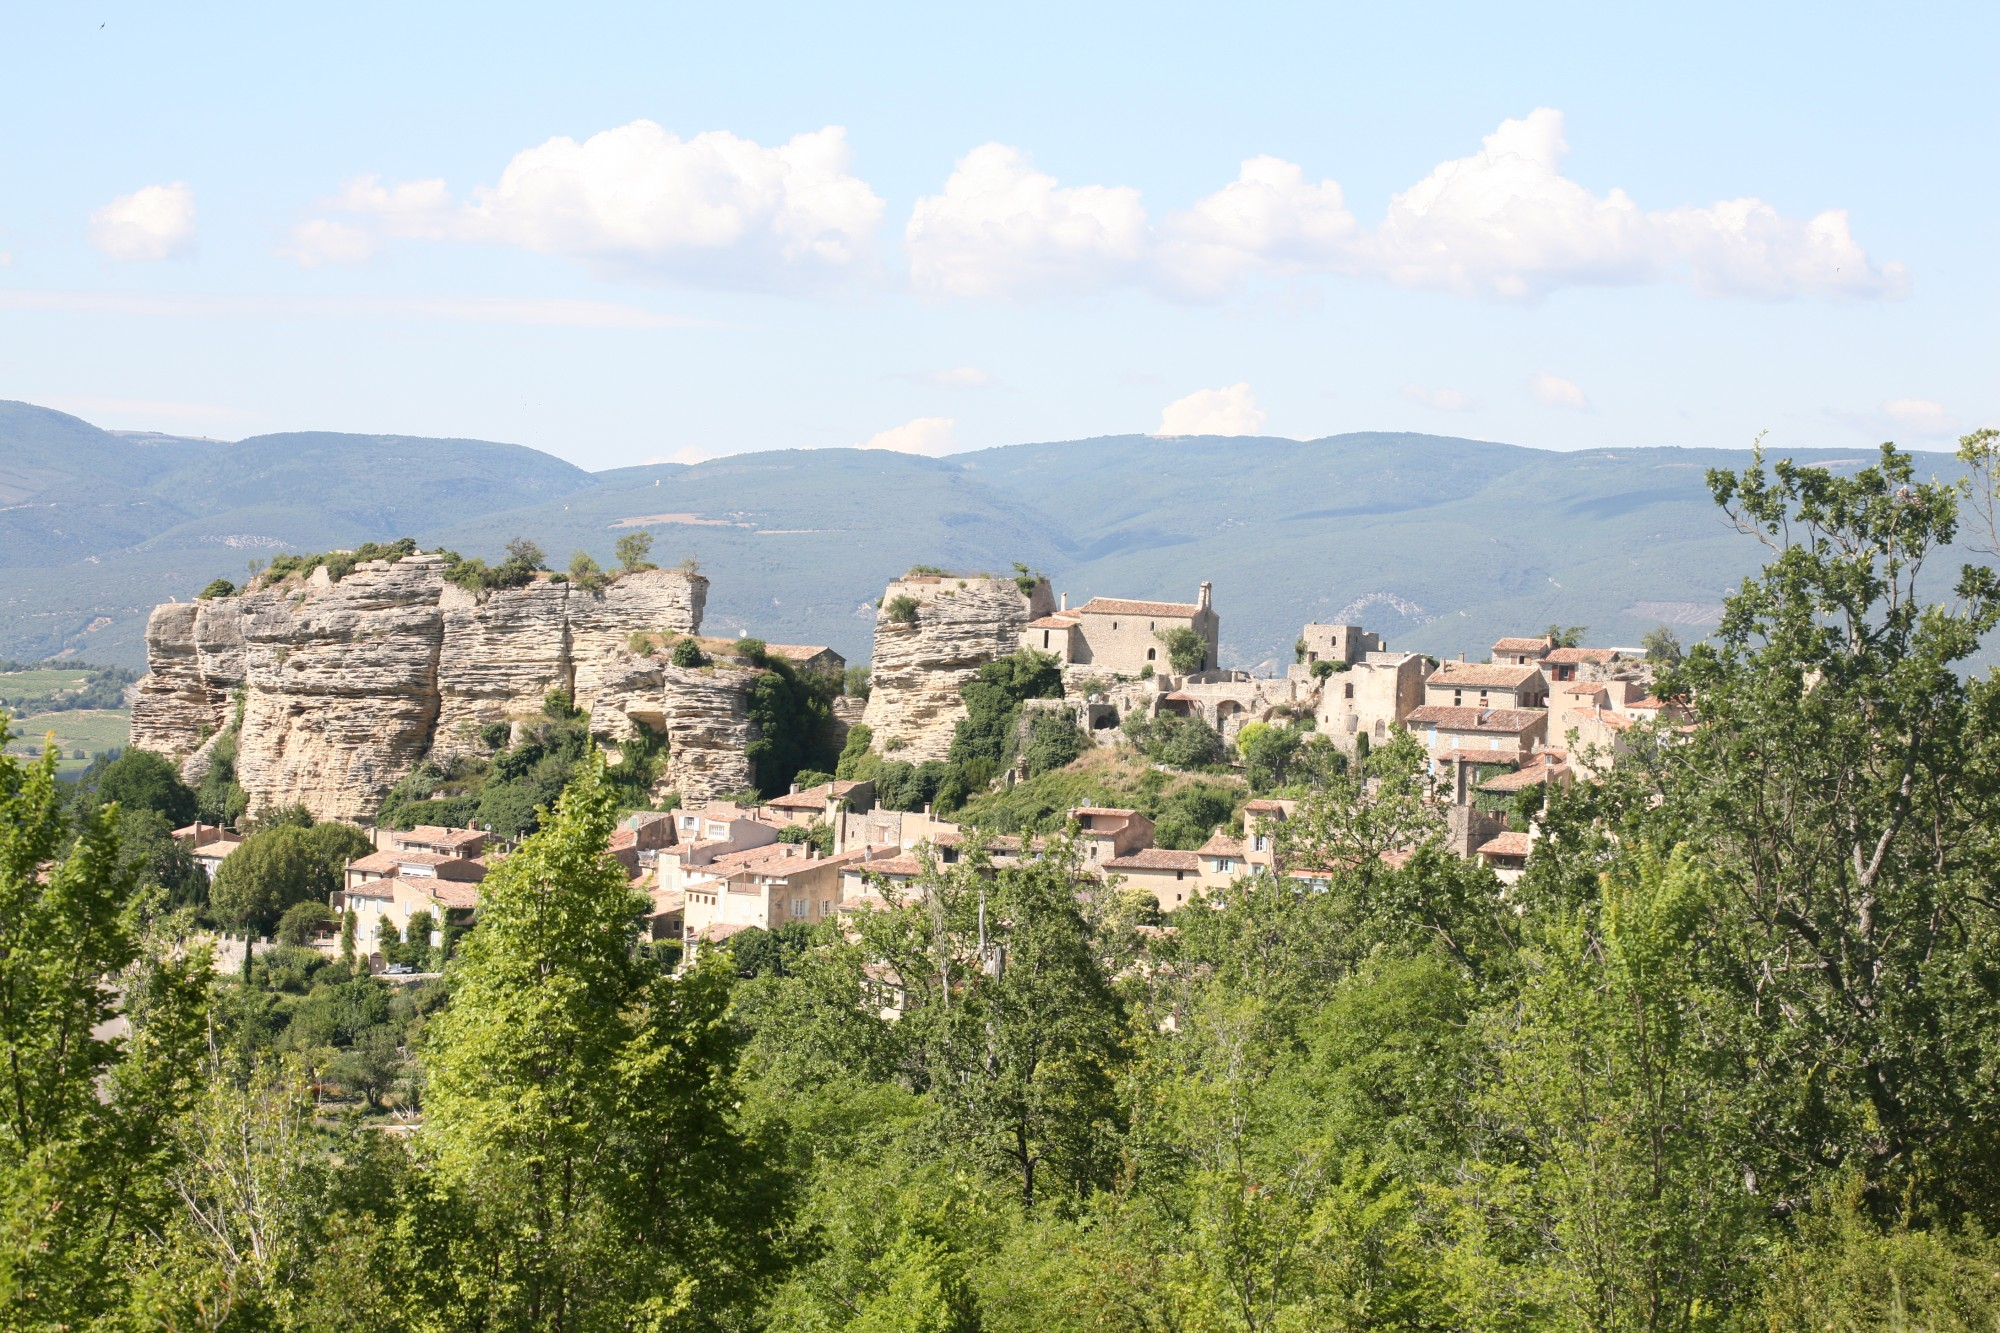 The medieval village of Saignon